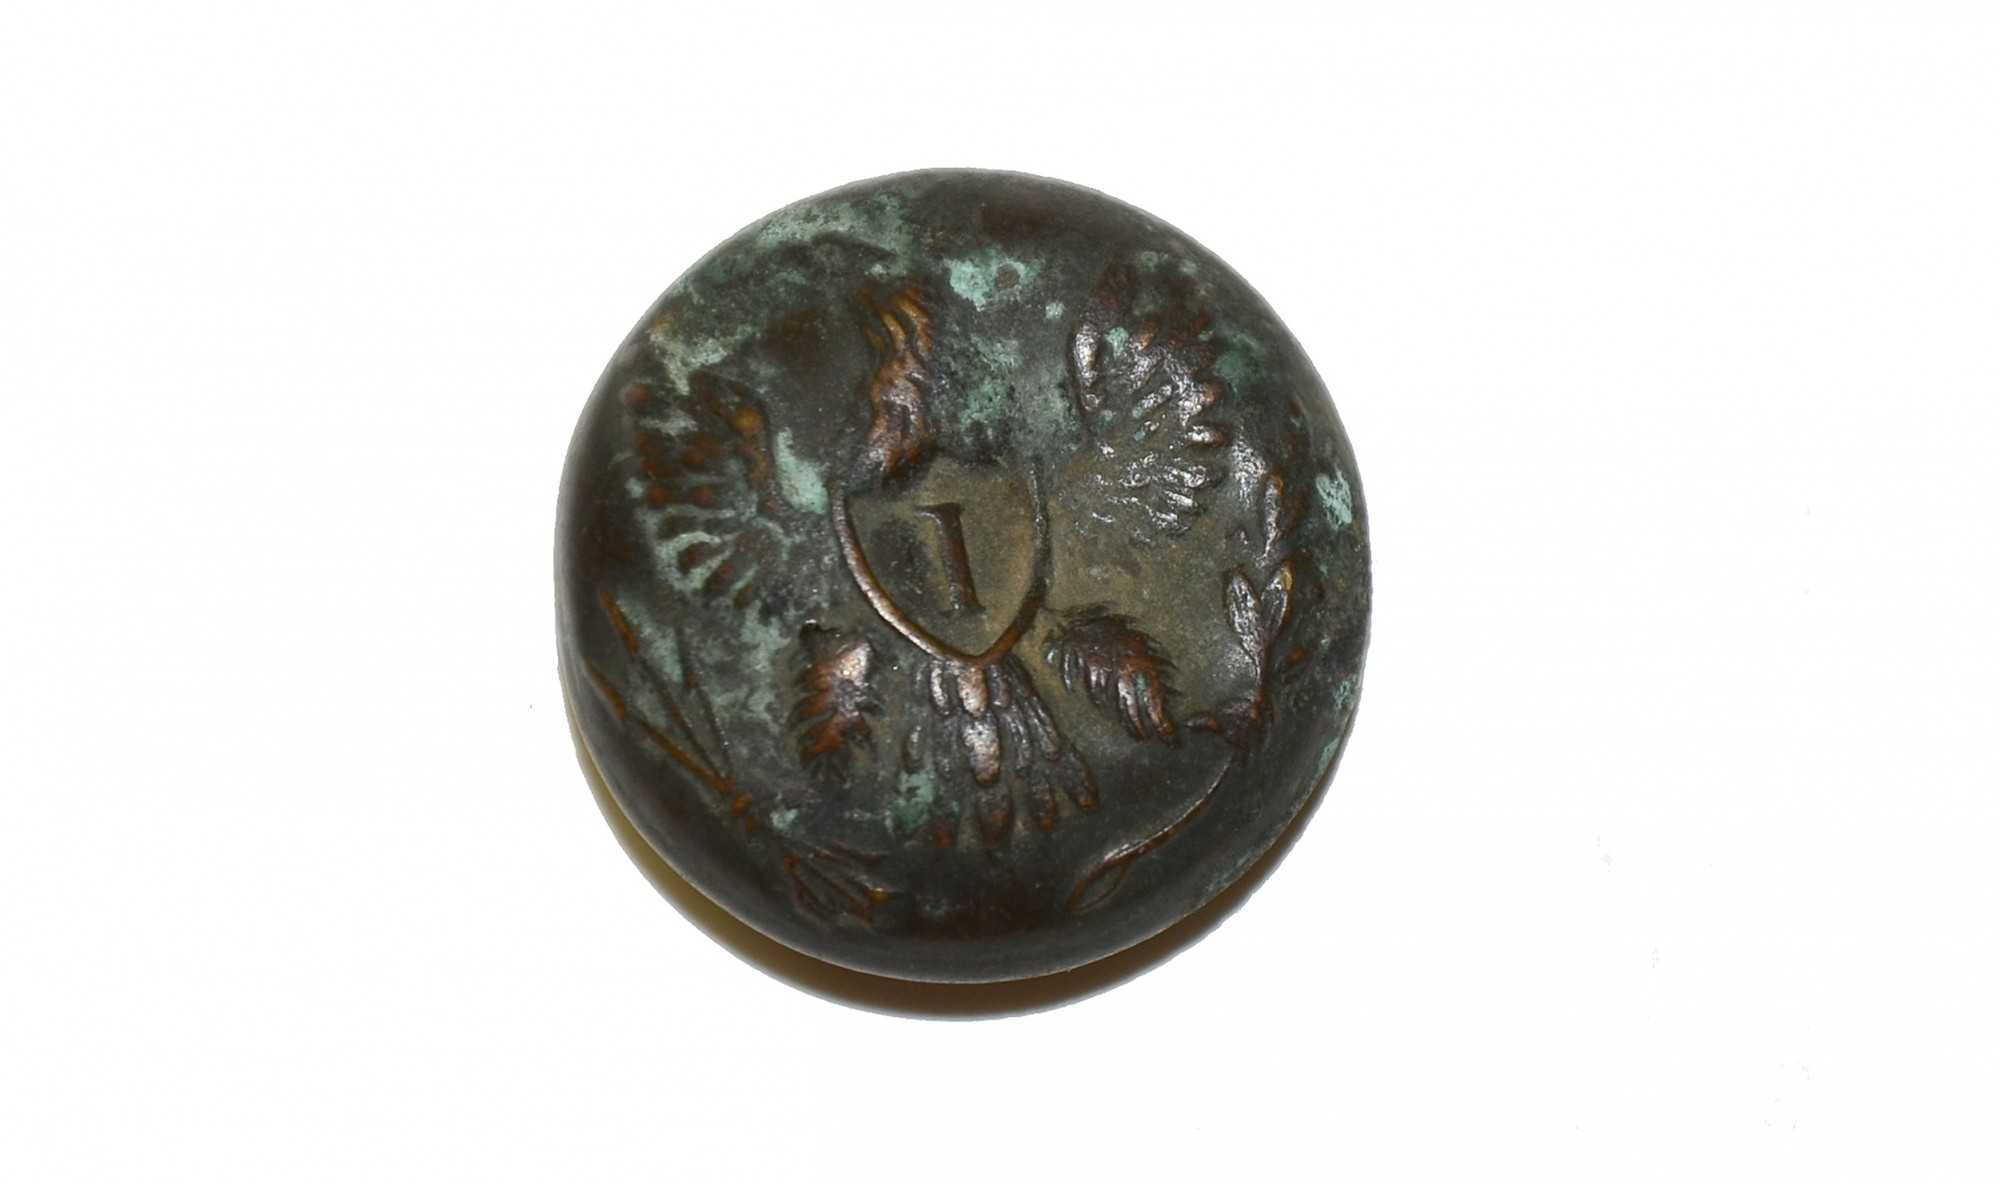 "EAGLE ""I"" BUTTON RECOVERED AT ROSE WOODS, GETTYSBURG"